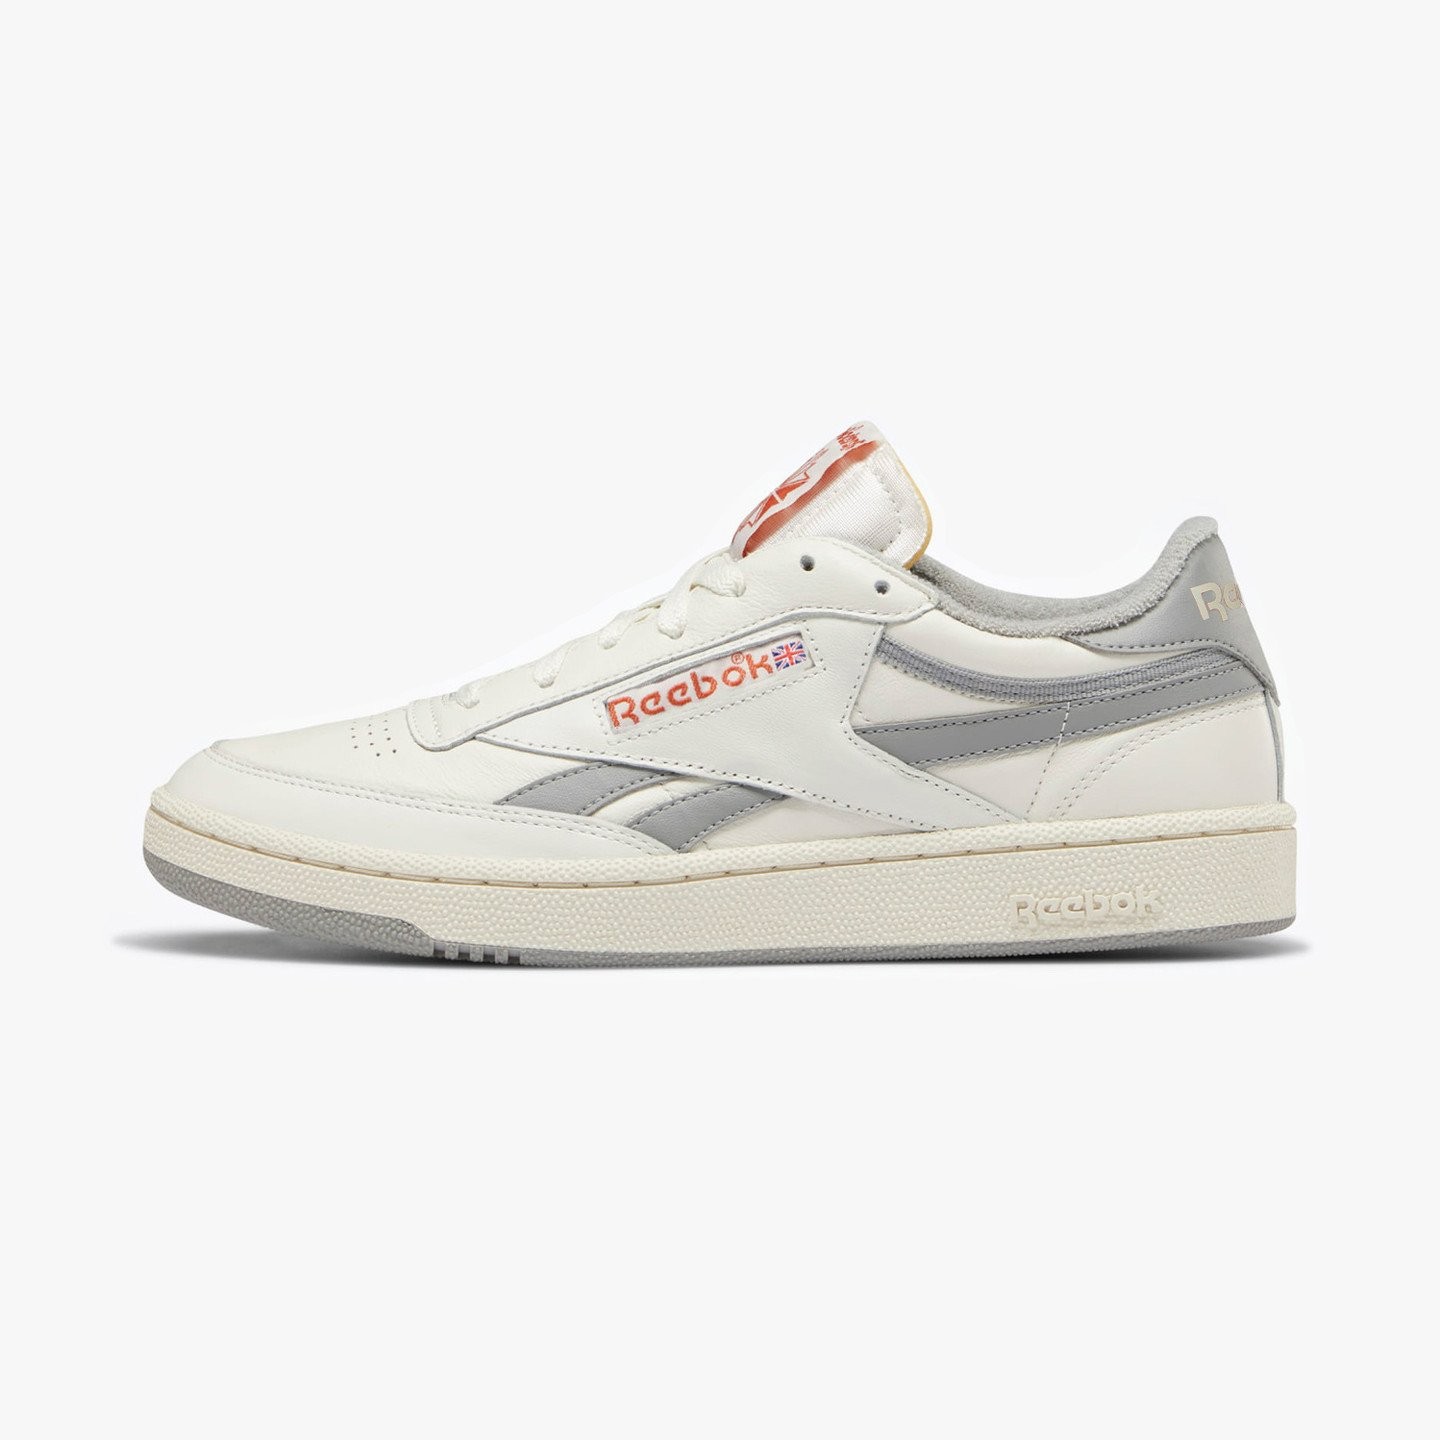 Reebok Revenge Plus Chalk / True Grey / White / Mars DV7187